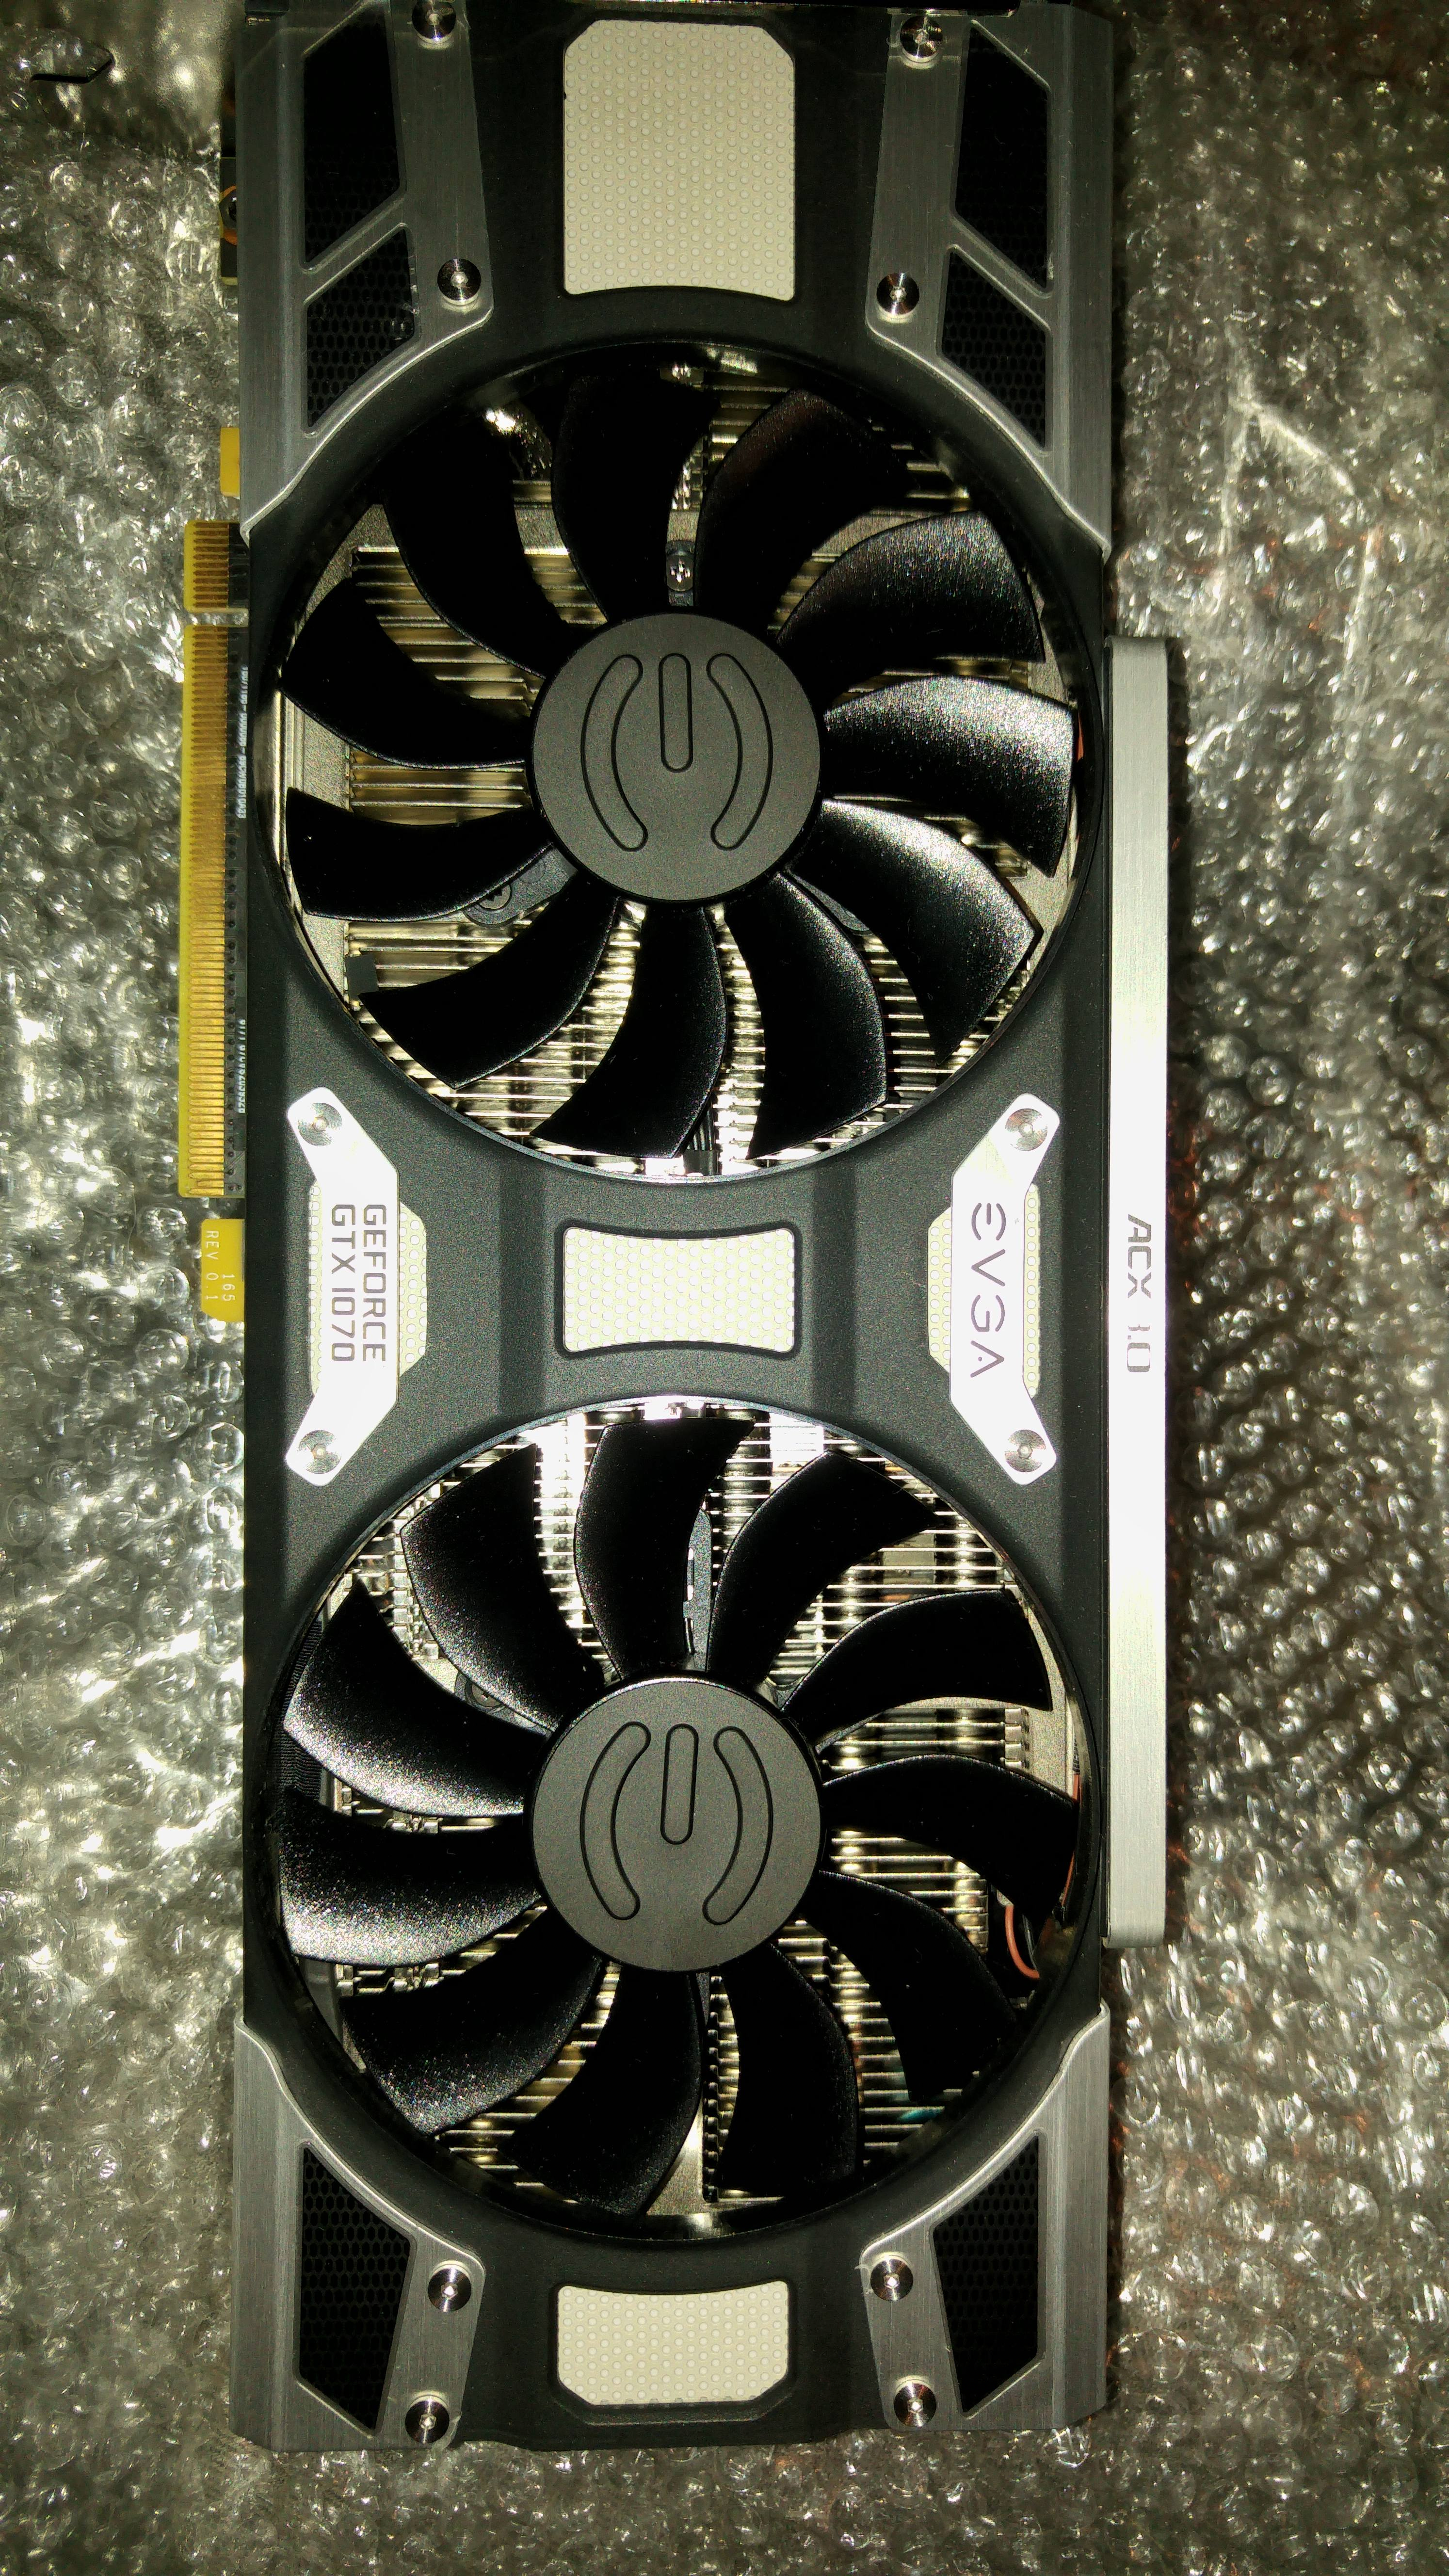 What can I expect to get for a GTX 1070 (evga brand, not an SC or